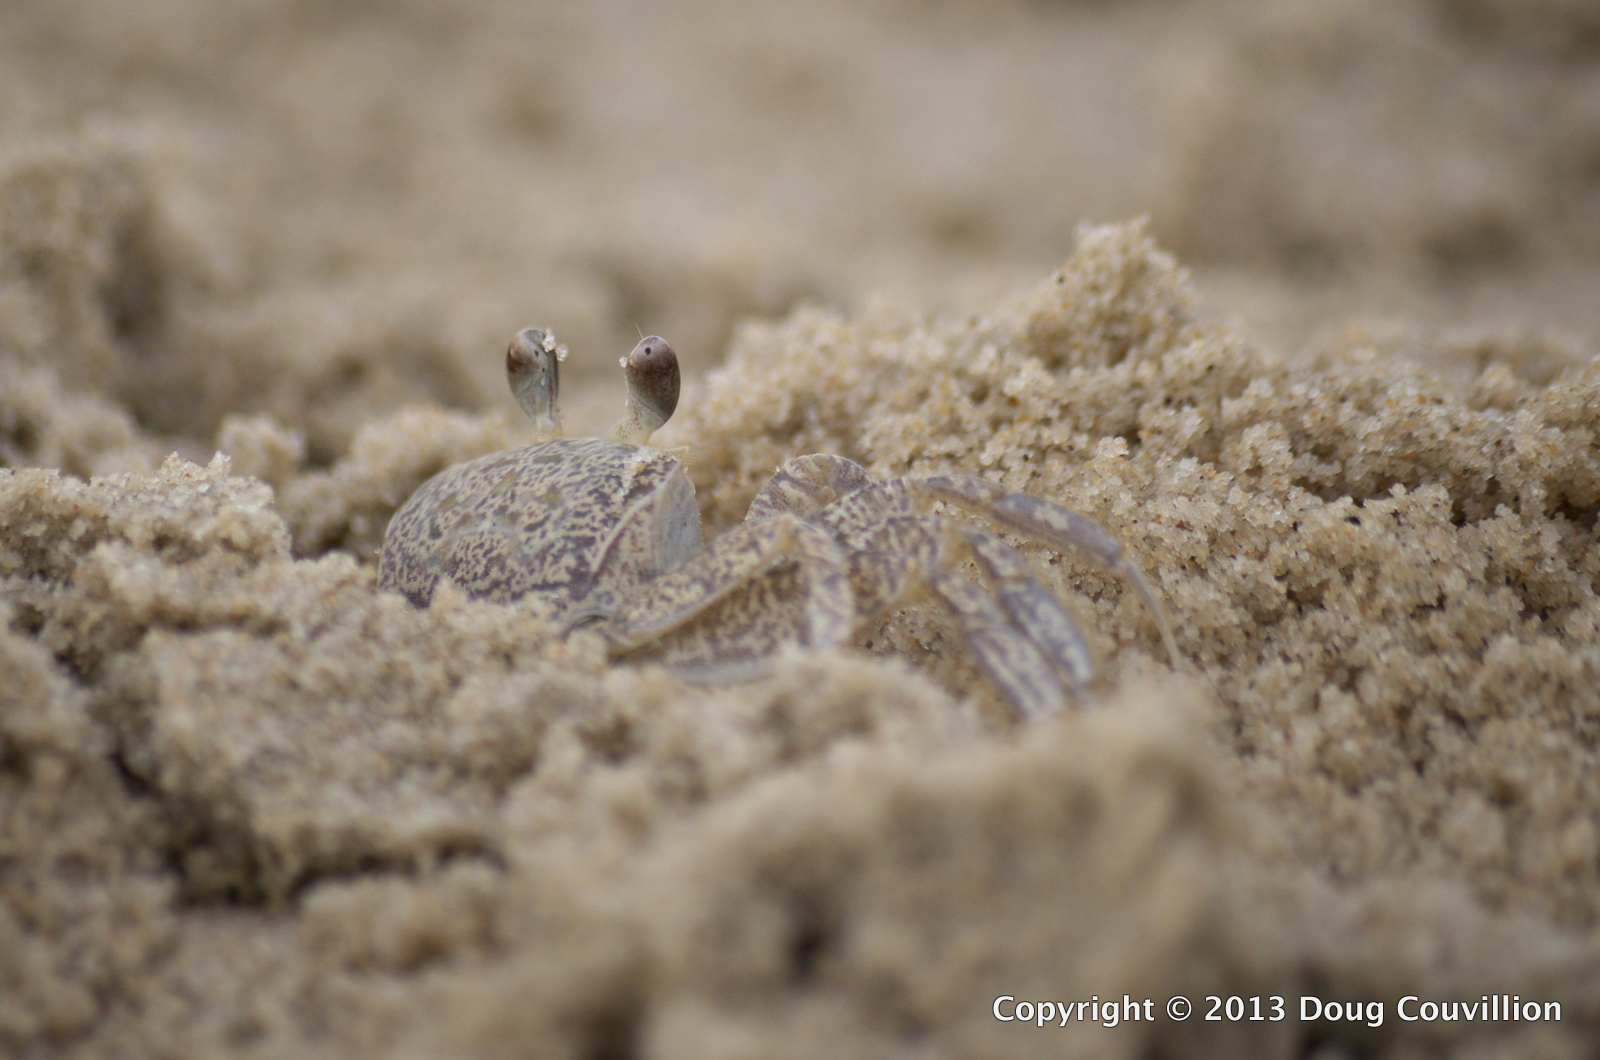 macro photograph of a small crab in the sand on the beach